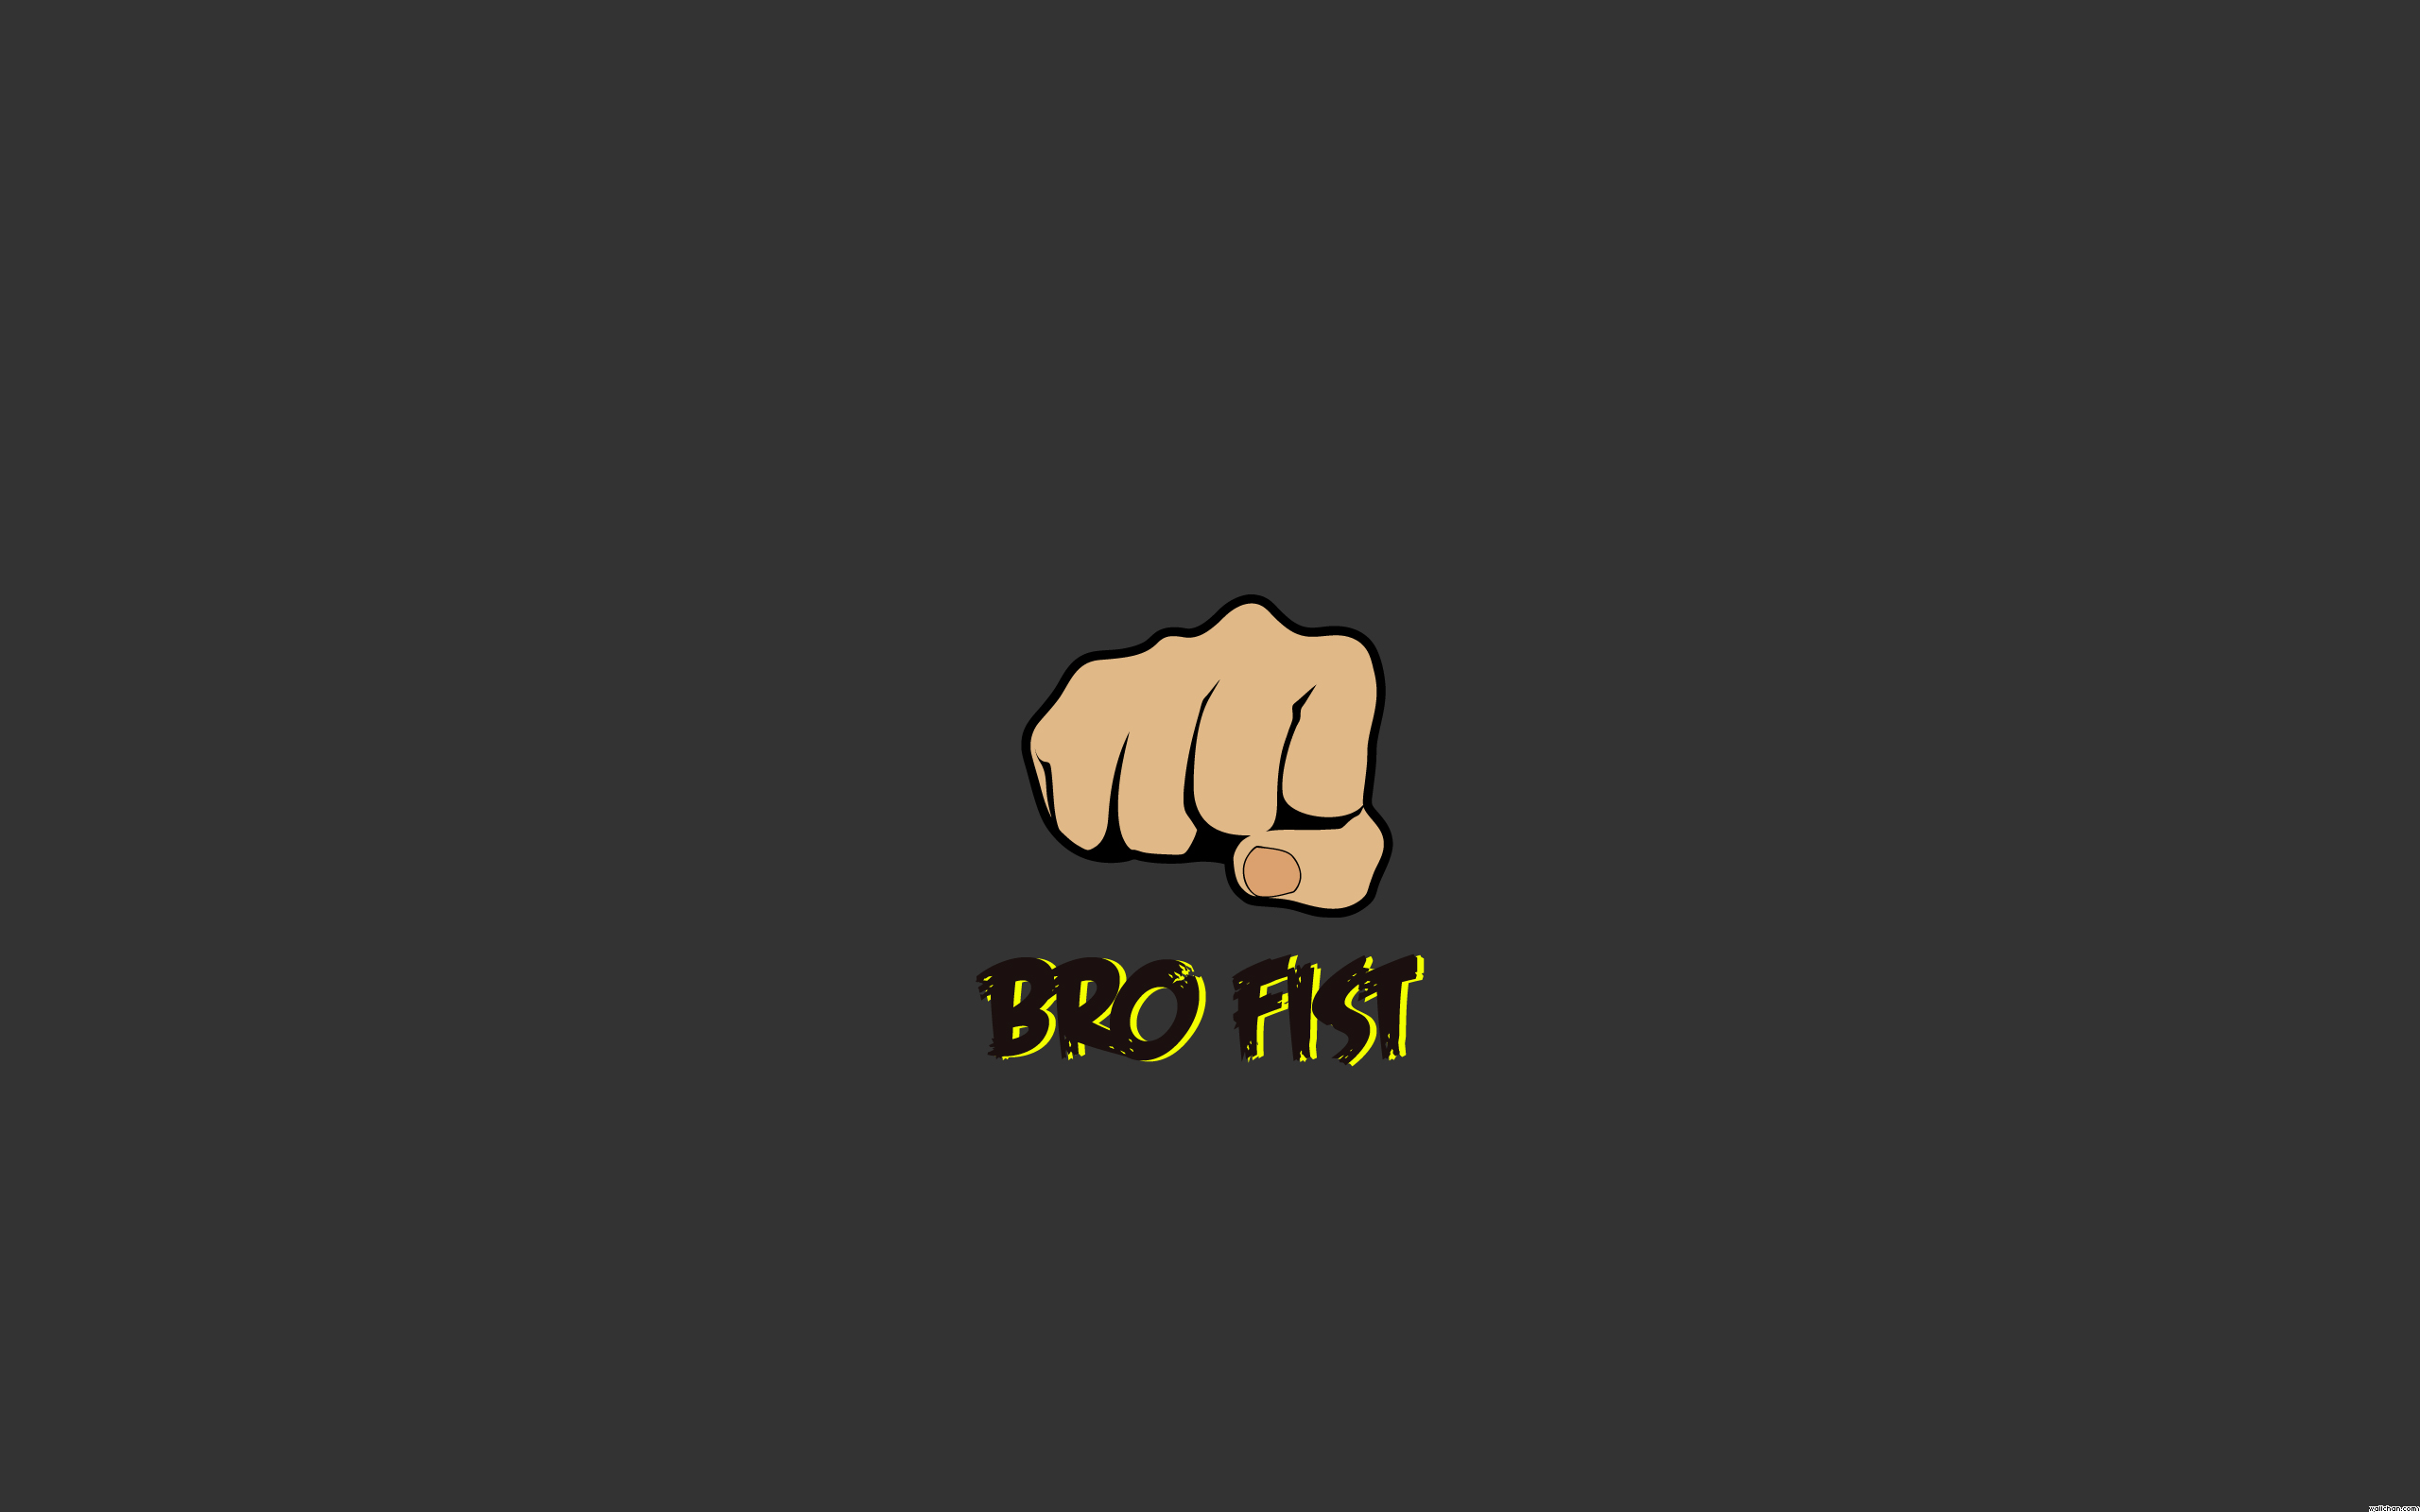 Wallpaper Pew Pie Brofist By Unlimited Og Fan Art Wallpaper Other X